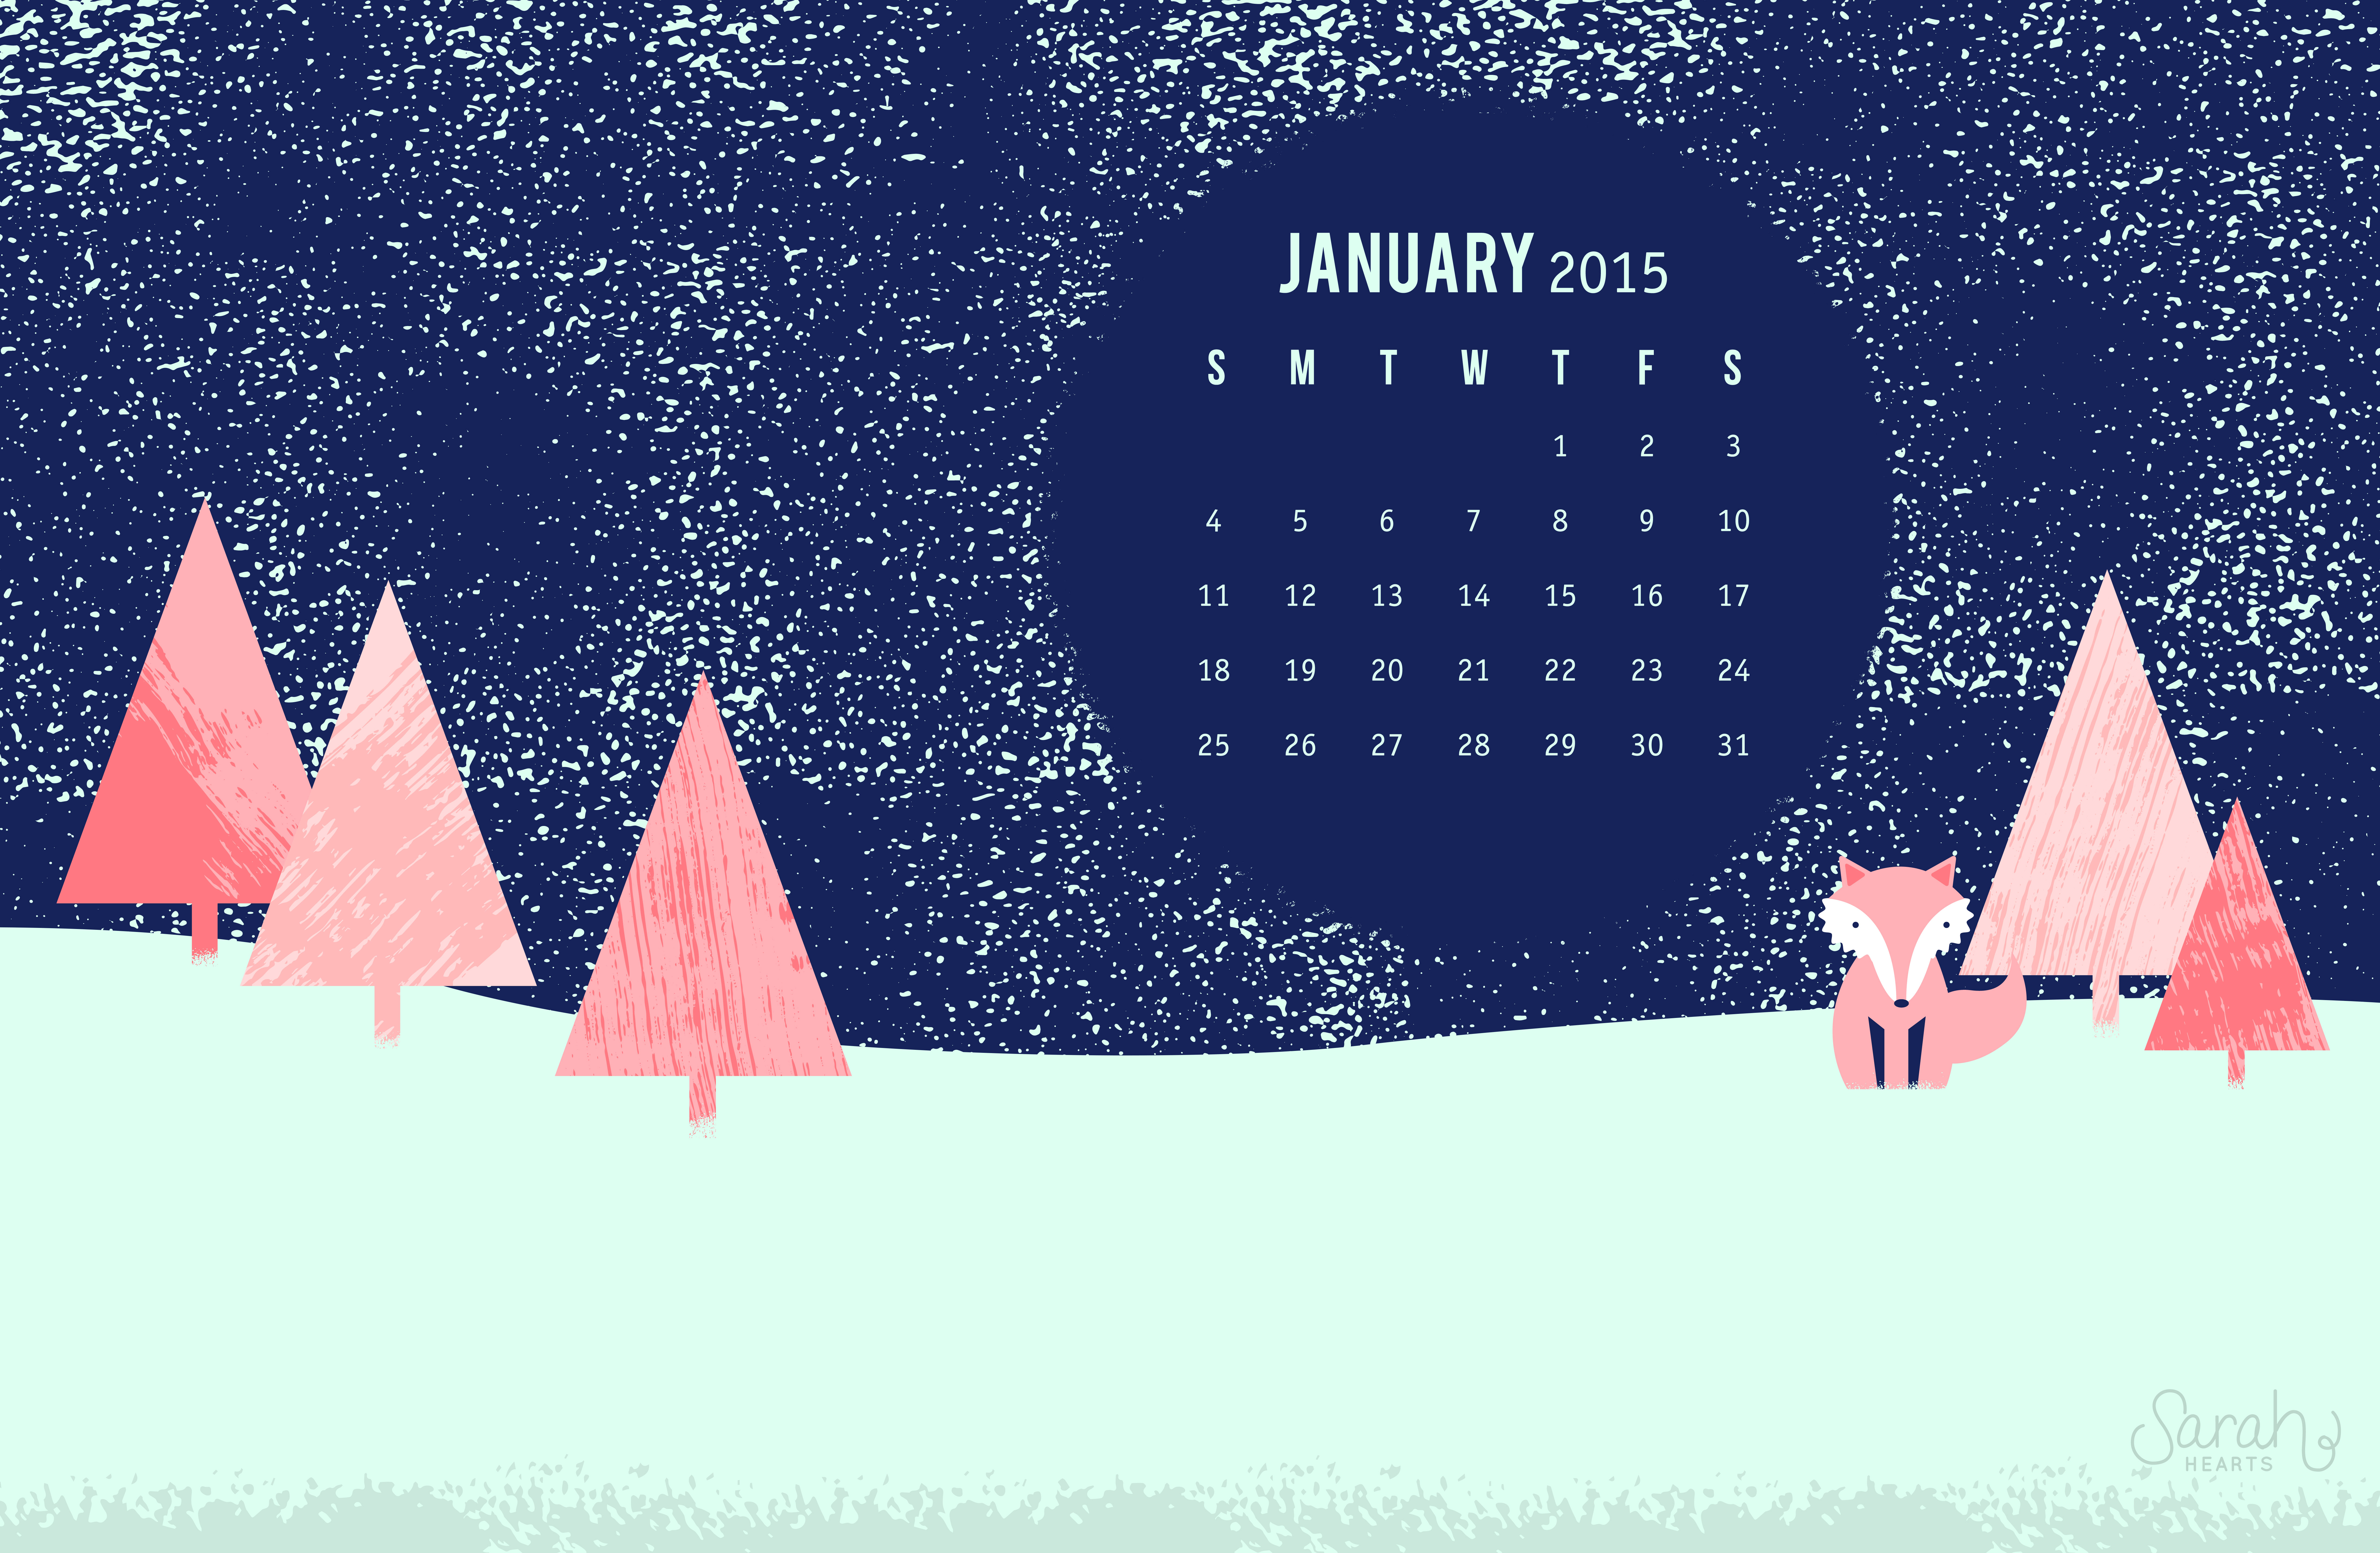 January 2015 Calendar Wallpaper   Sarah Hearts 8800x5744